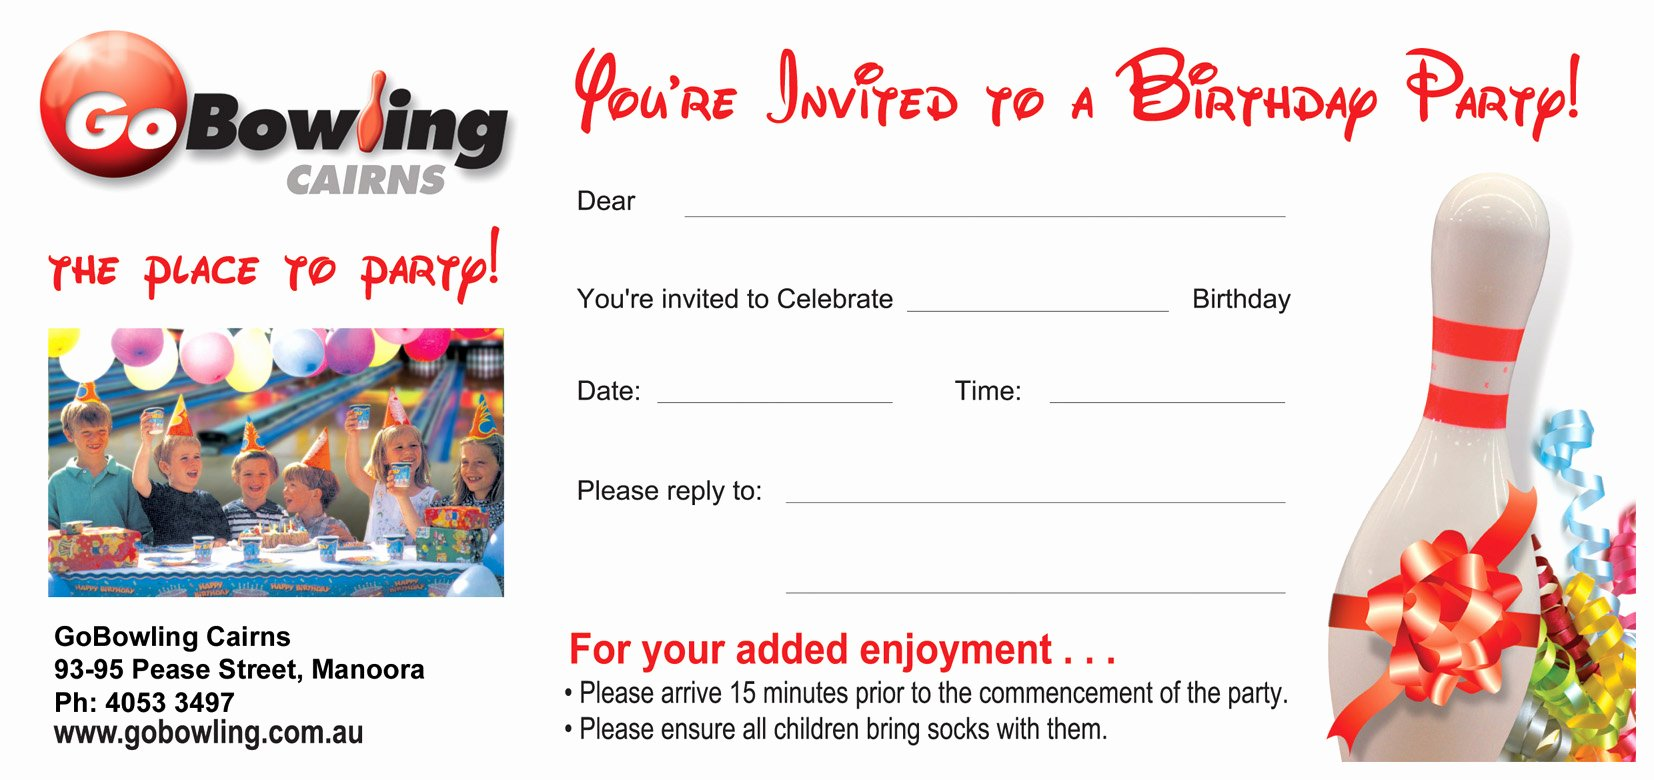 Free Bowling Invitations Template Best Of Bowling Party Invitations Templates Ideas Bowling Party